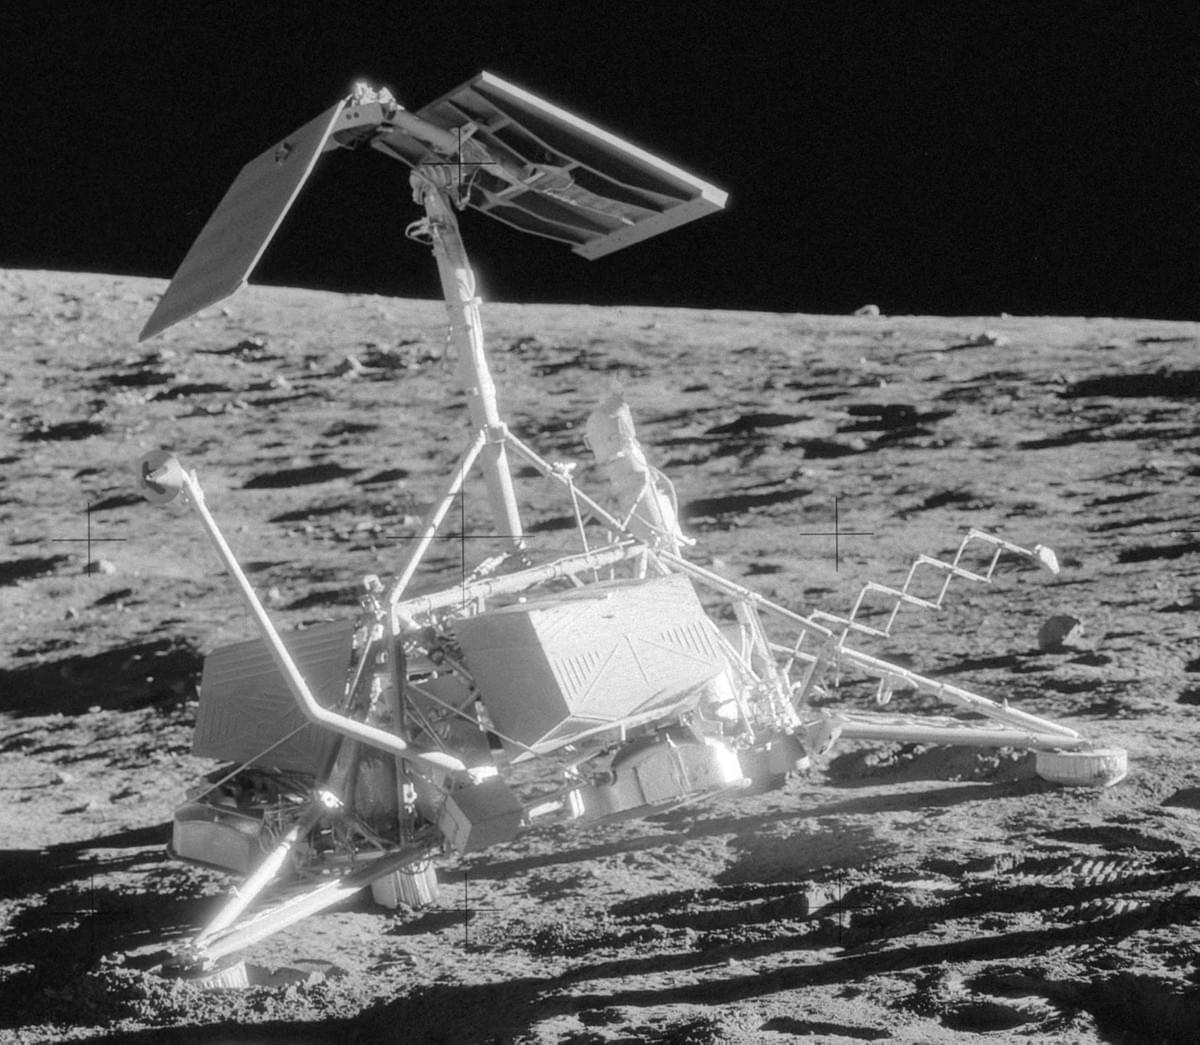 Surveyor 3 on the Moon photographed during a visit by Apollo 12 astronauts.